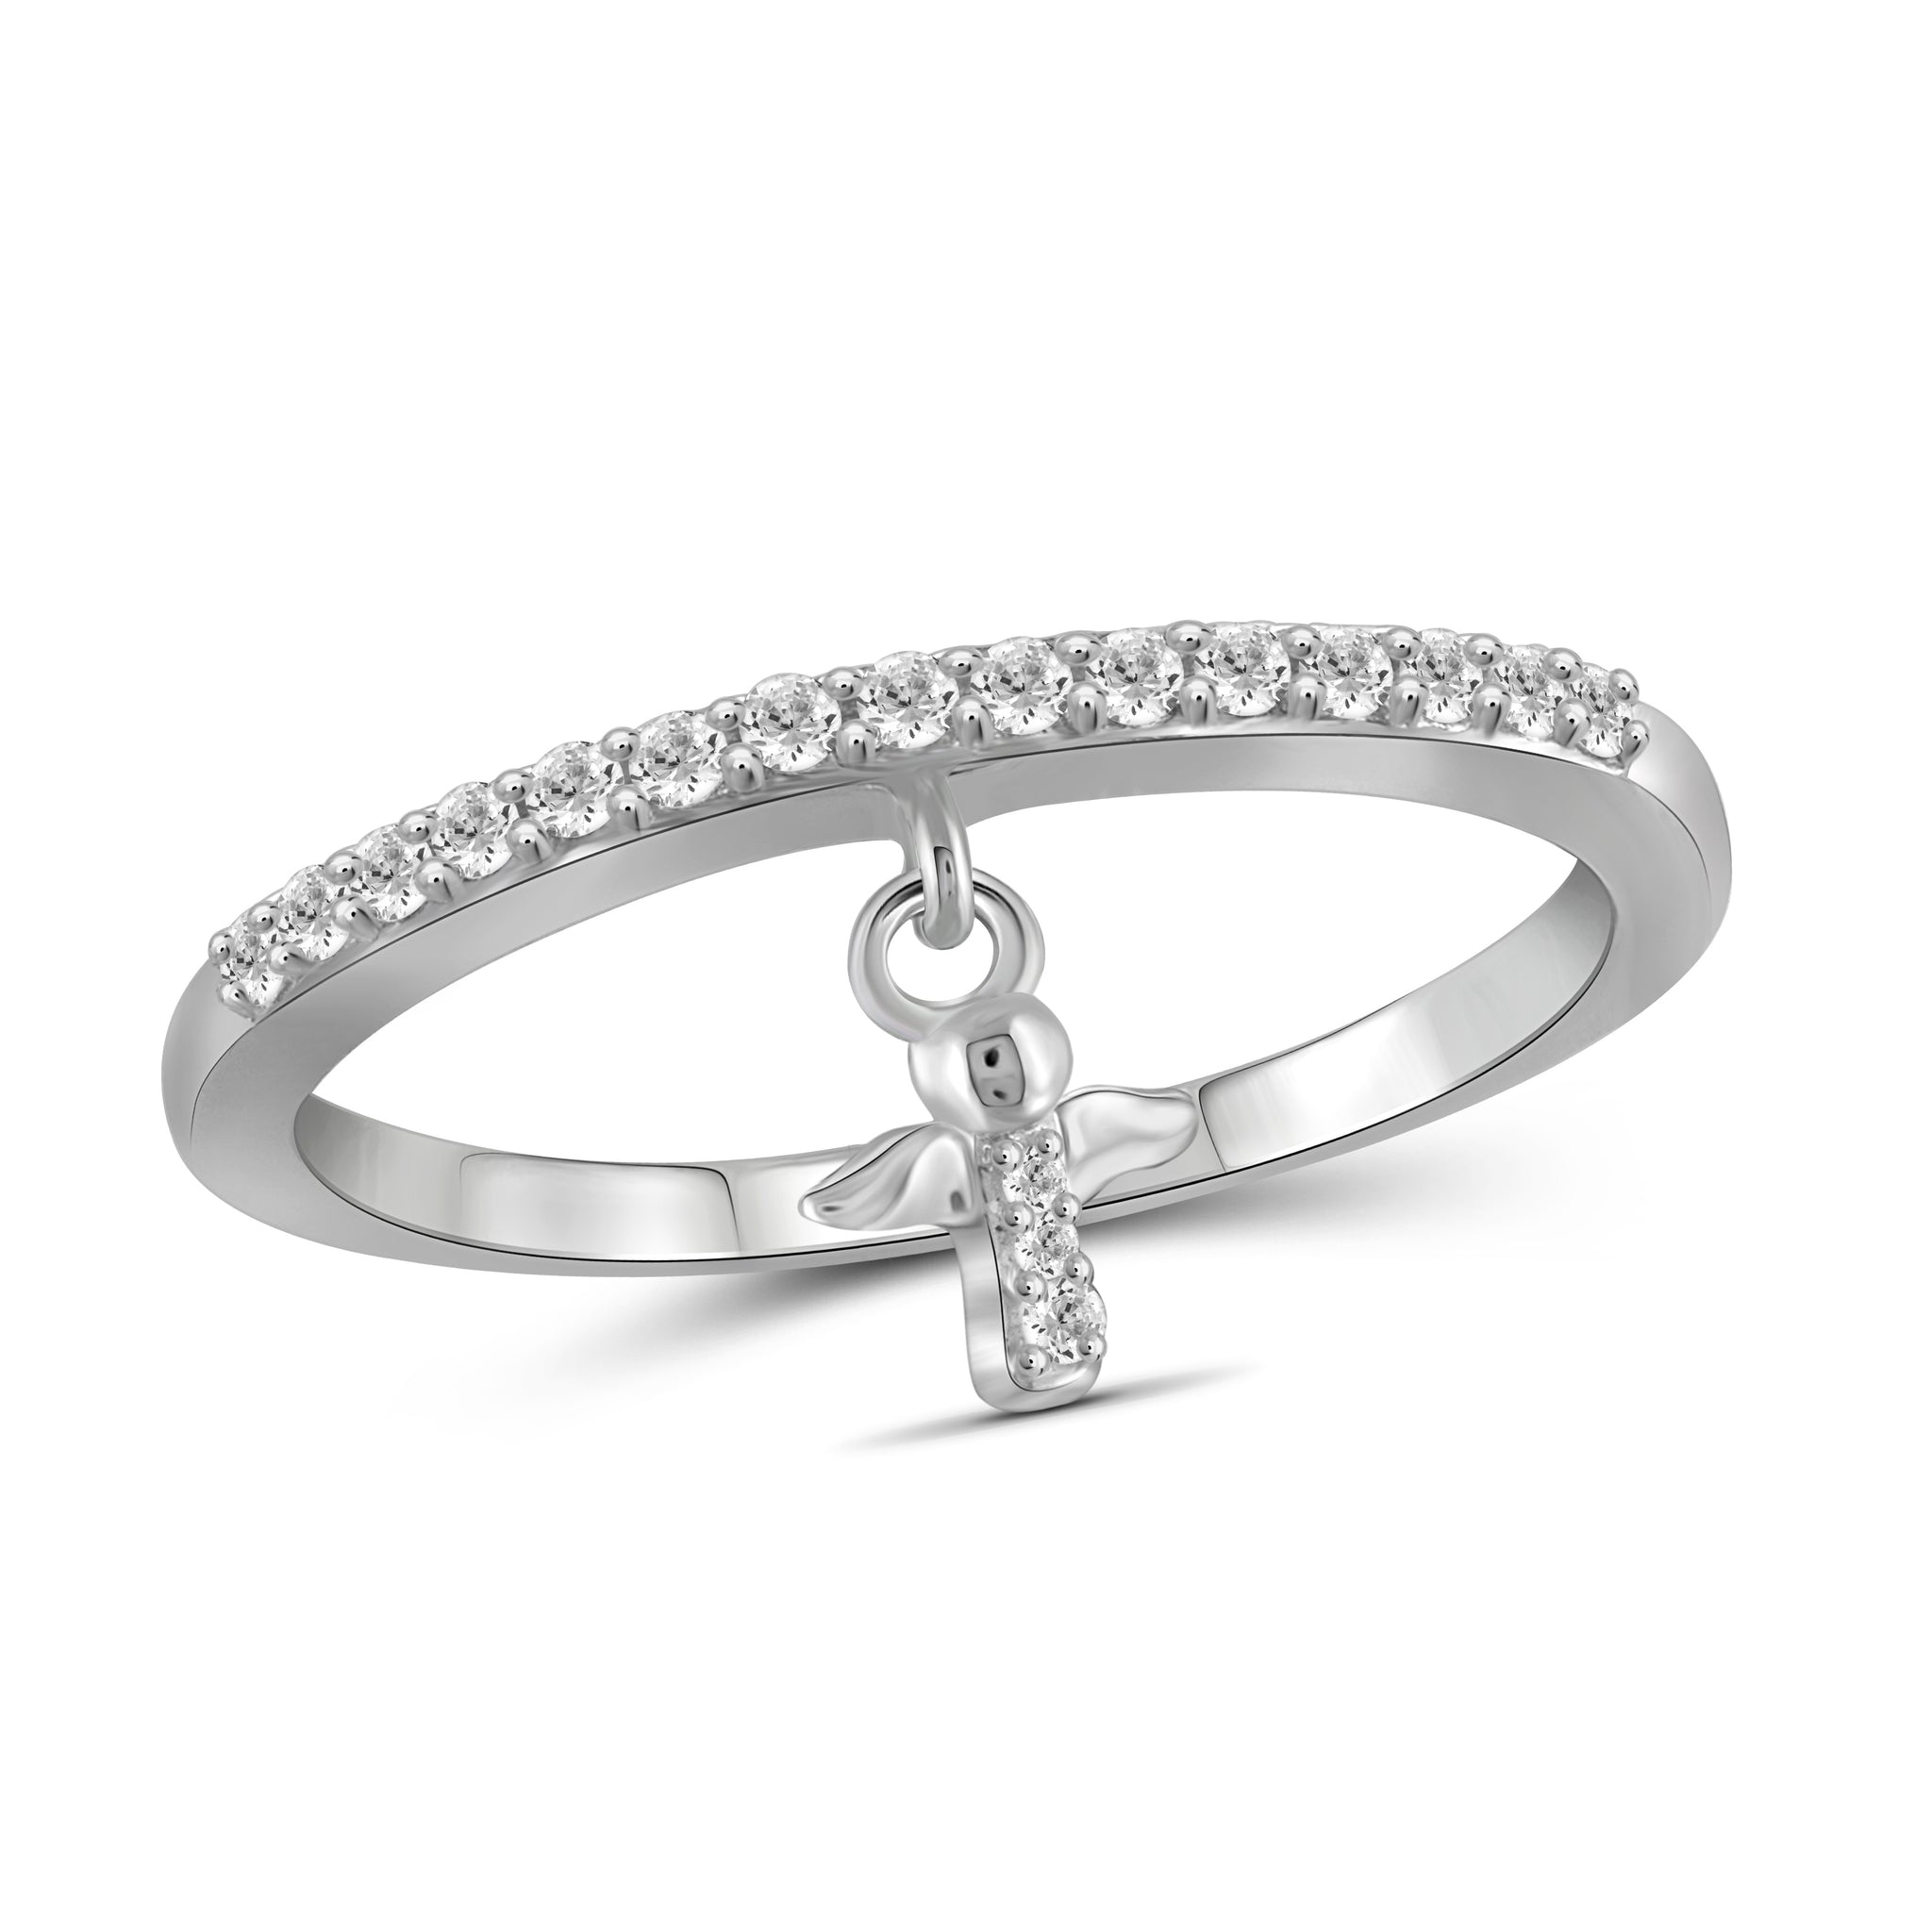 JewelonFire 1/5 Carat T.W. White Diamond Sterling Silver Cross Stackable Ring - Assorted Colors